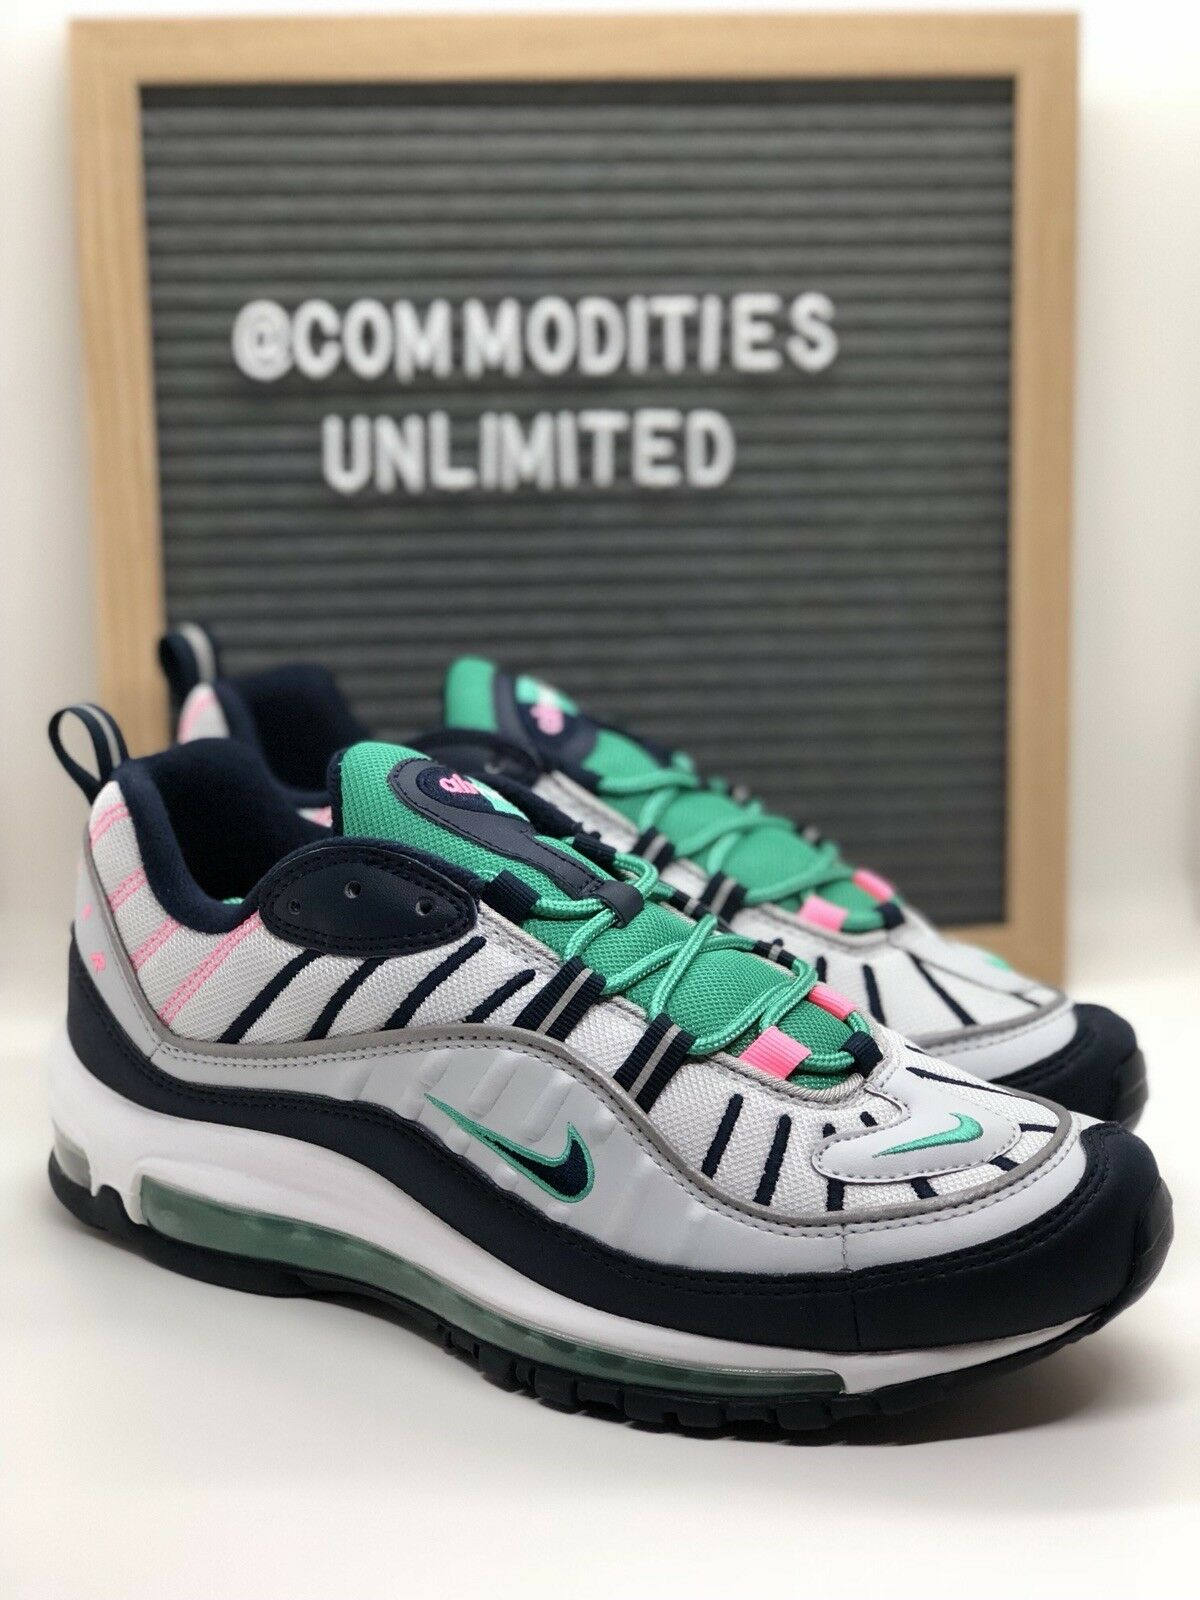 Nike AIR MAX 98 (640744 005) Men's Sneakers Size 8.5 South Beach / Tidal Wave